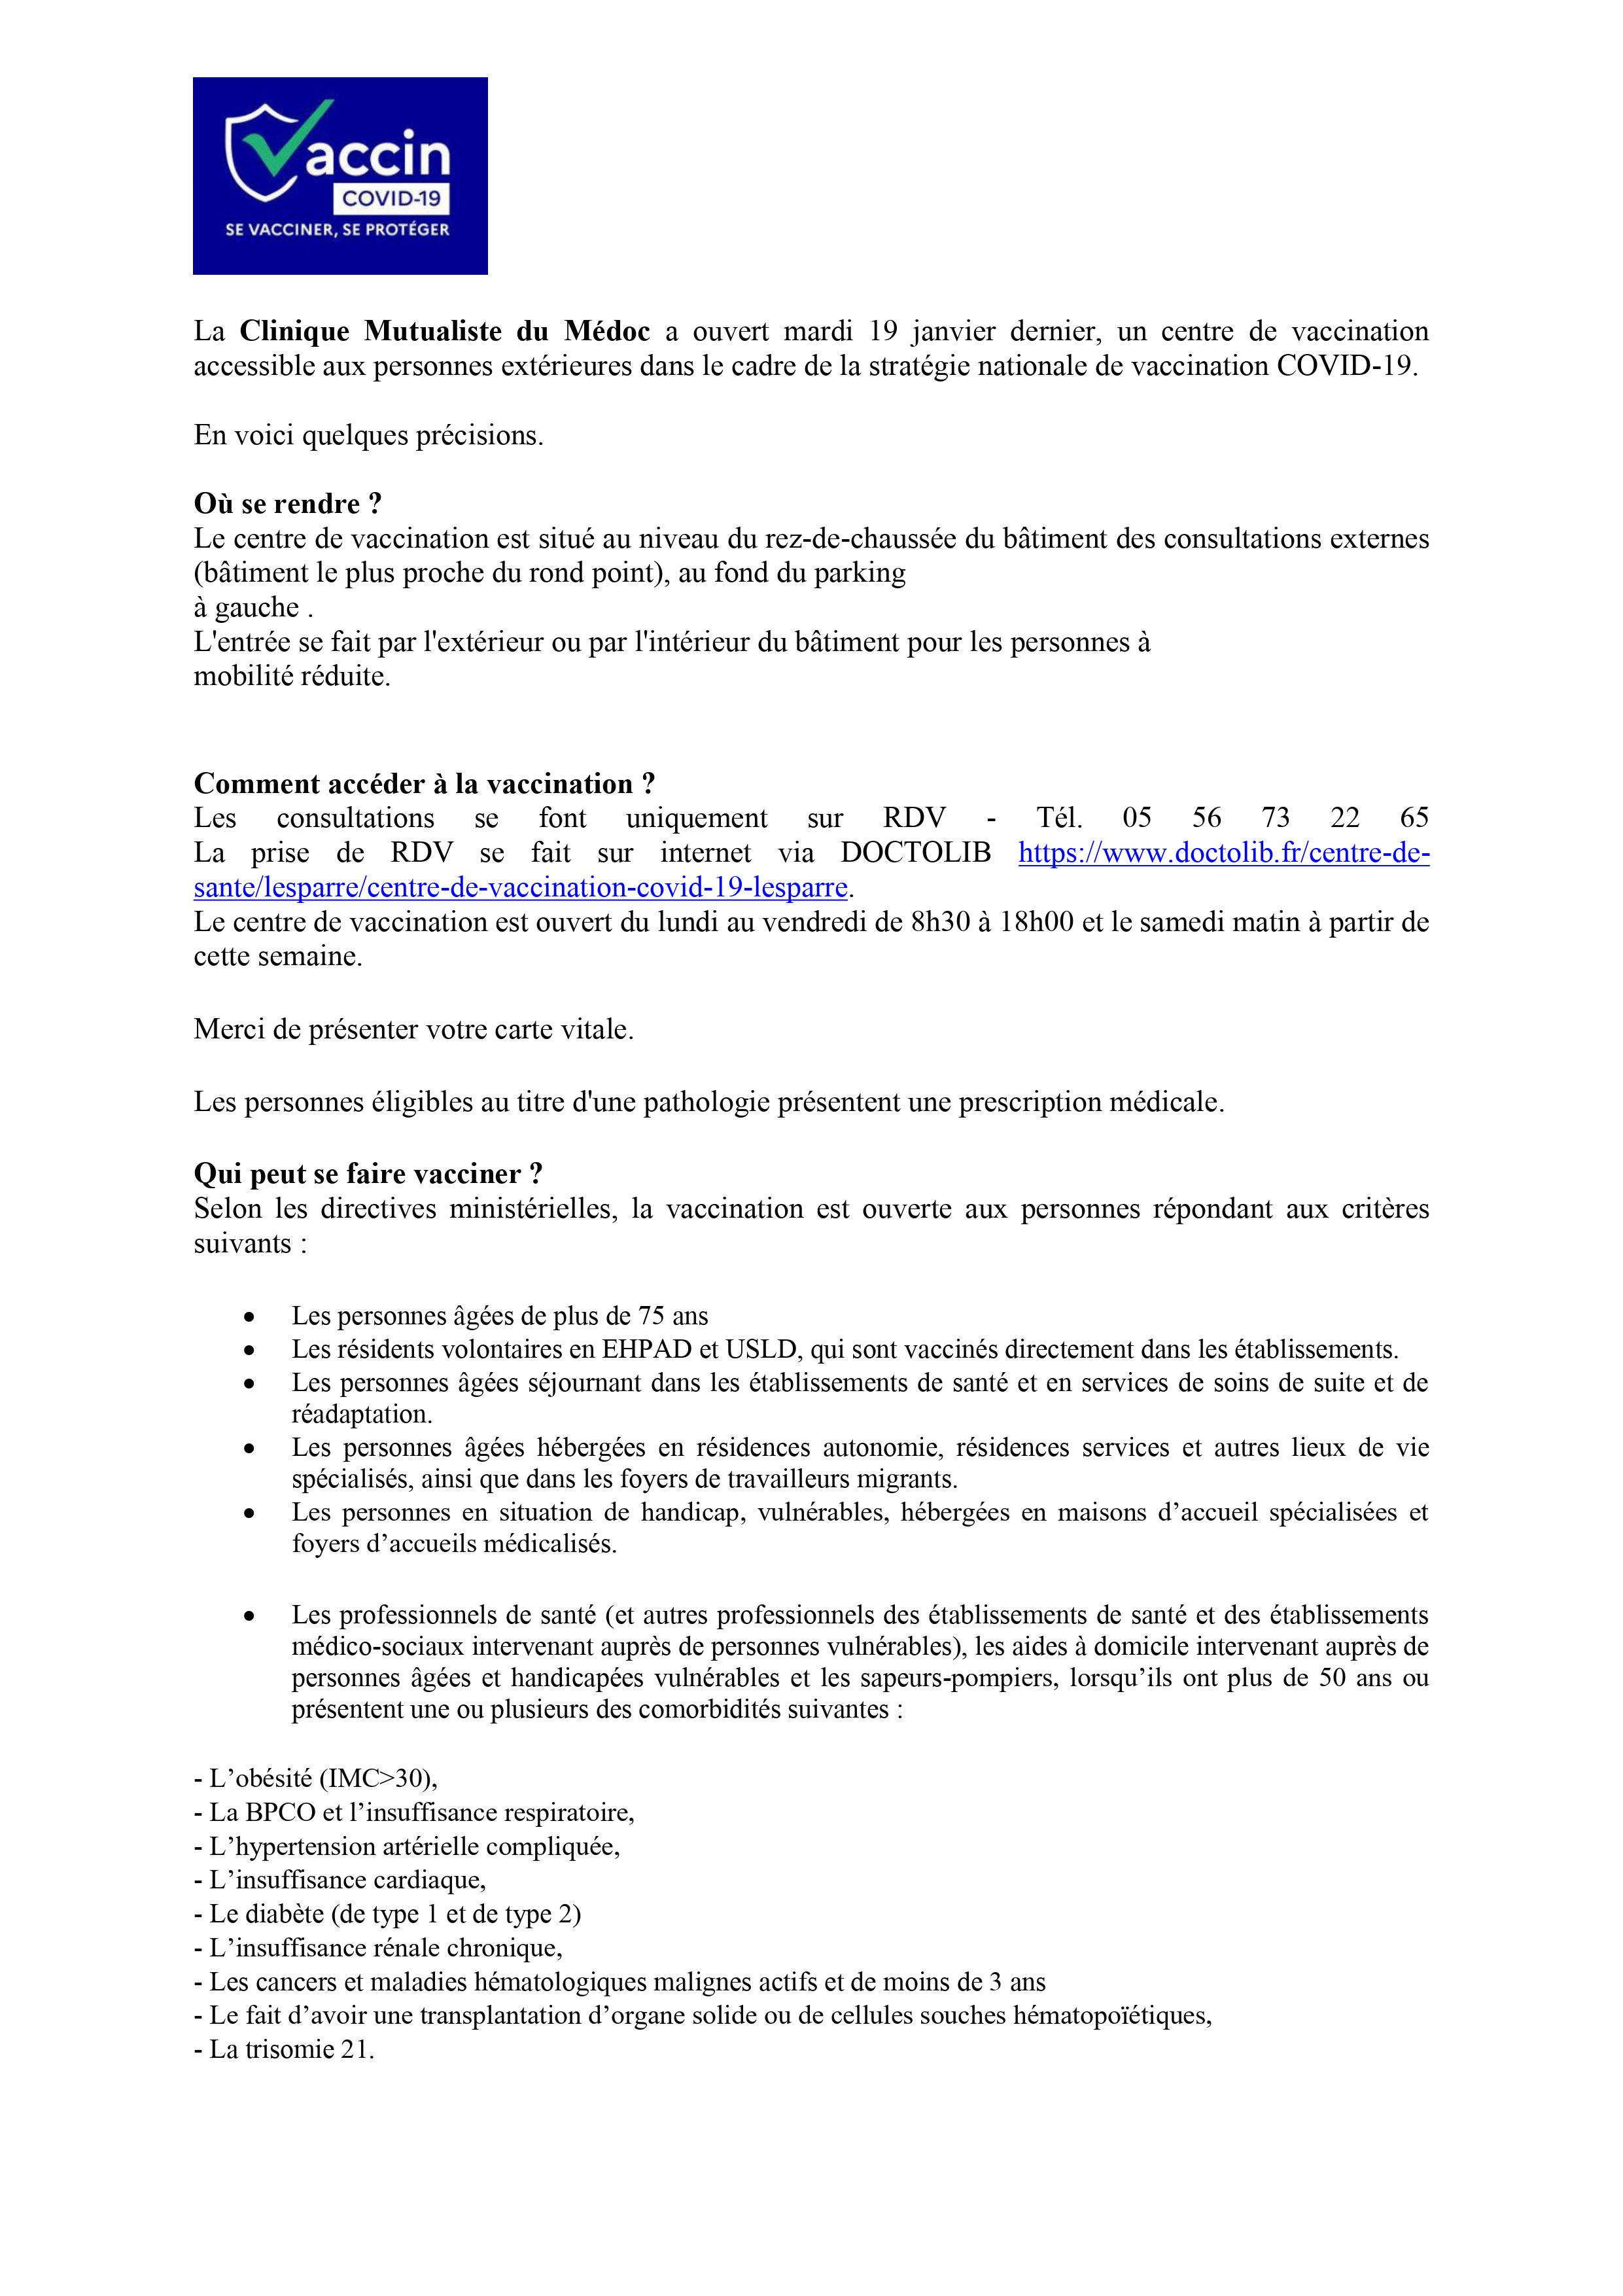 clinique mutualiste lesparre vaccination covid 19